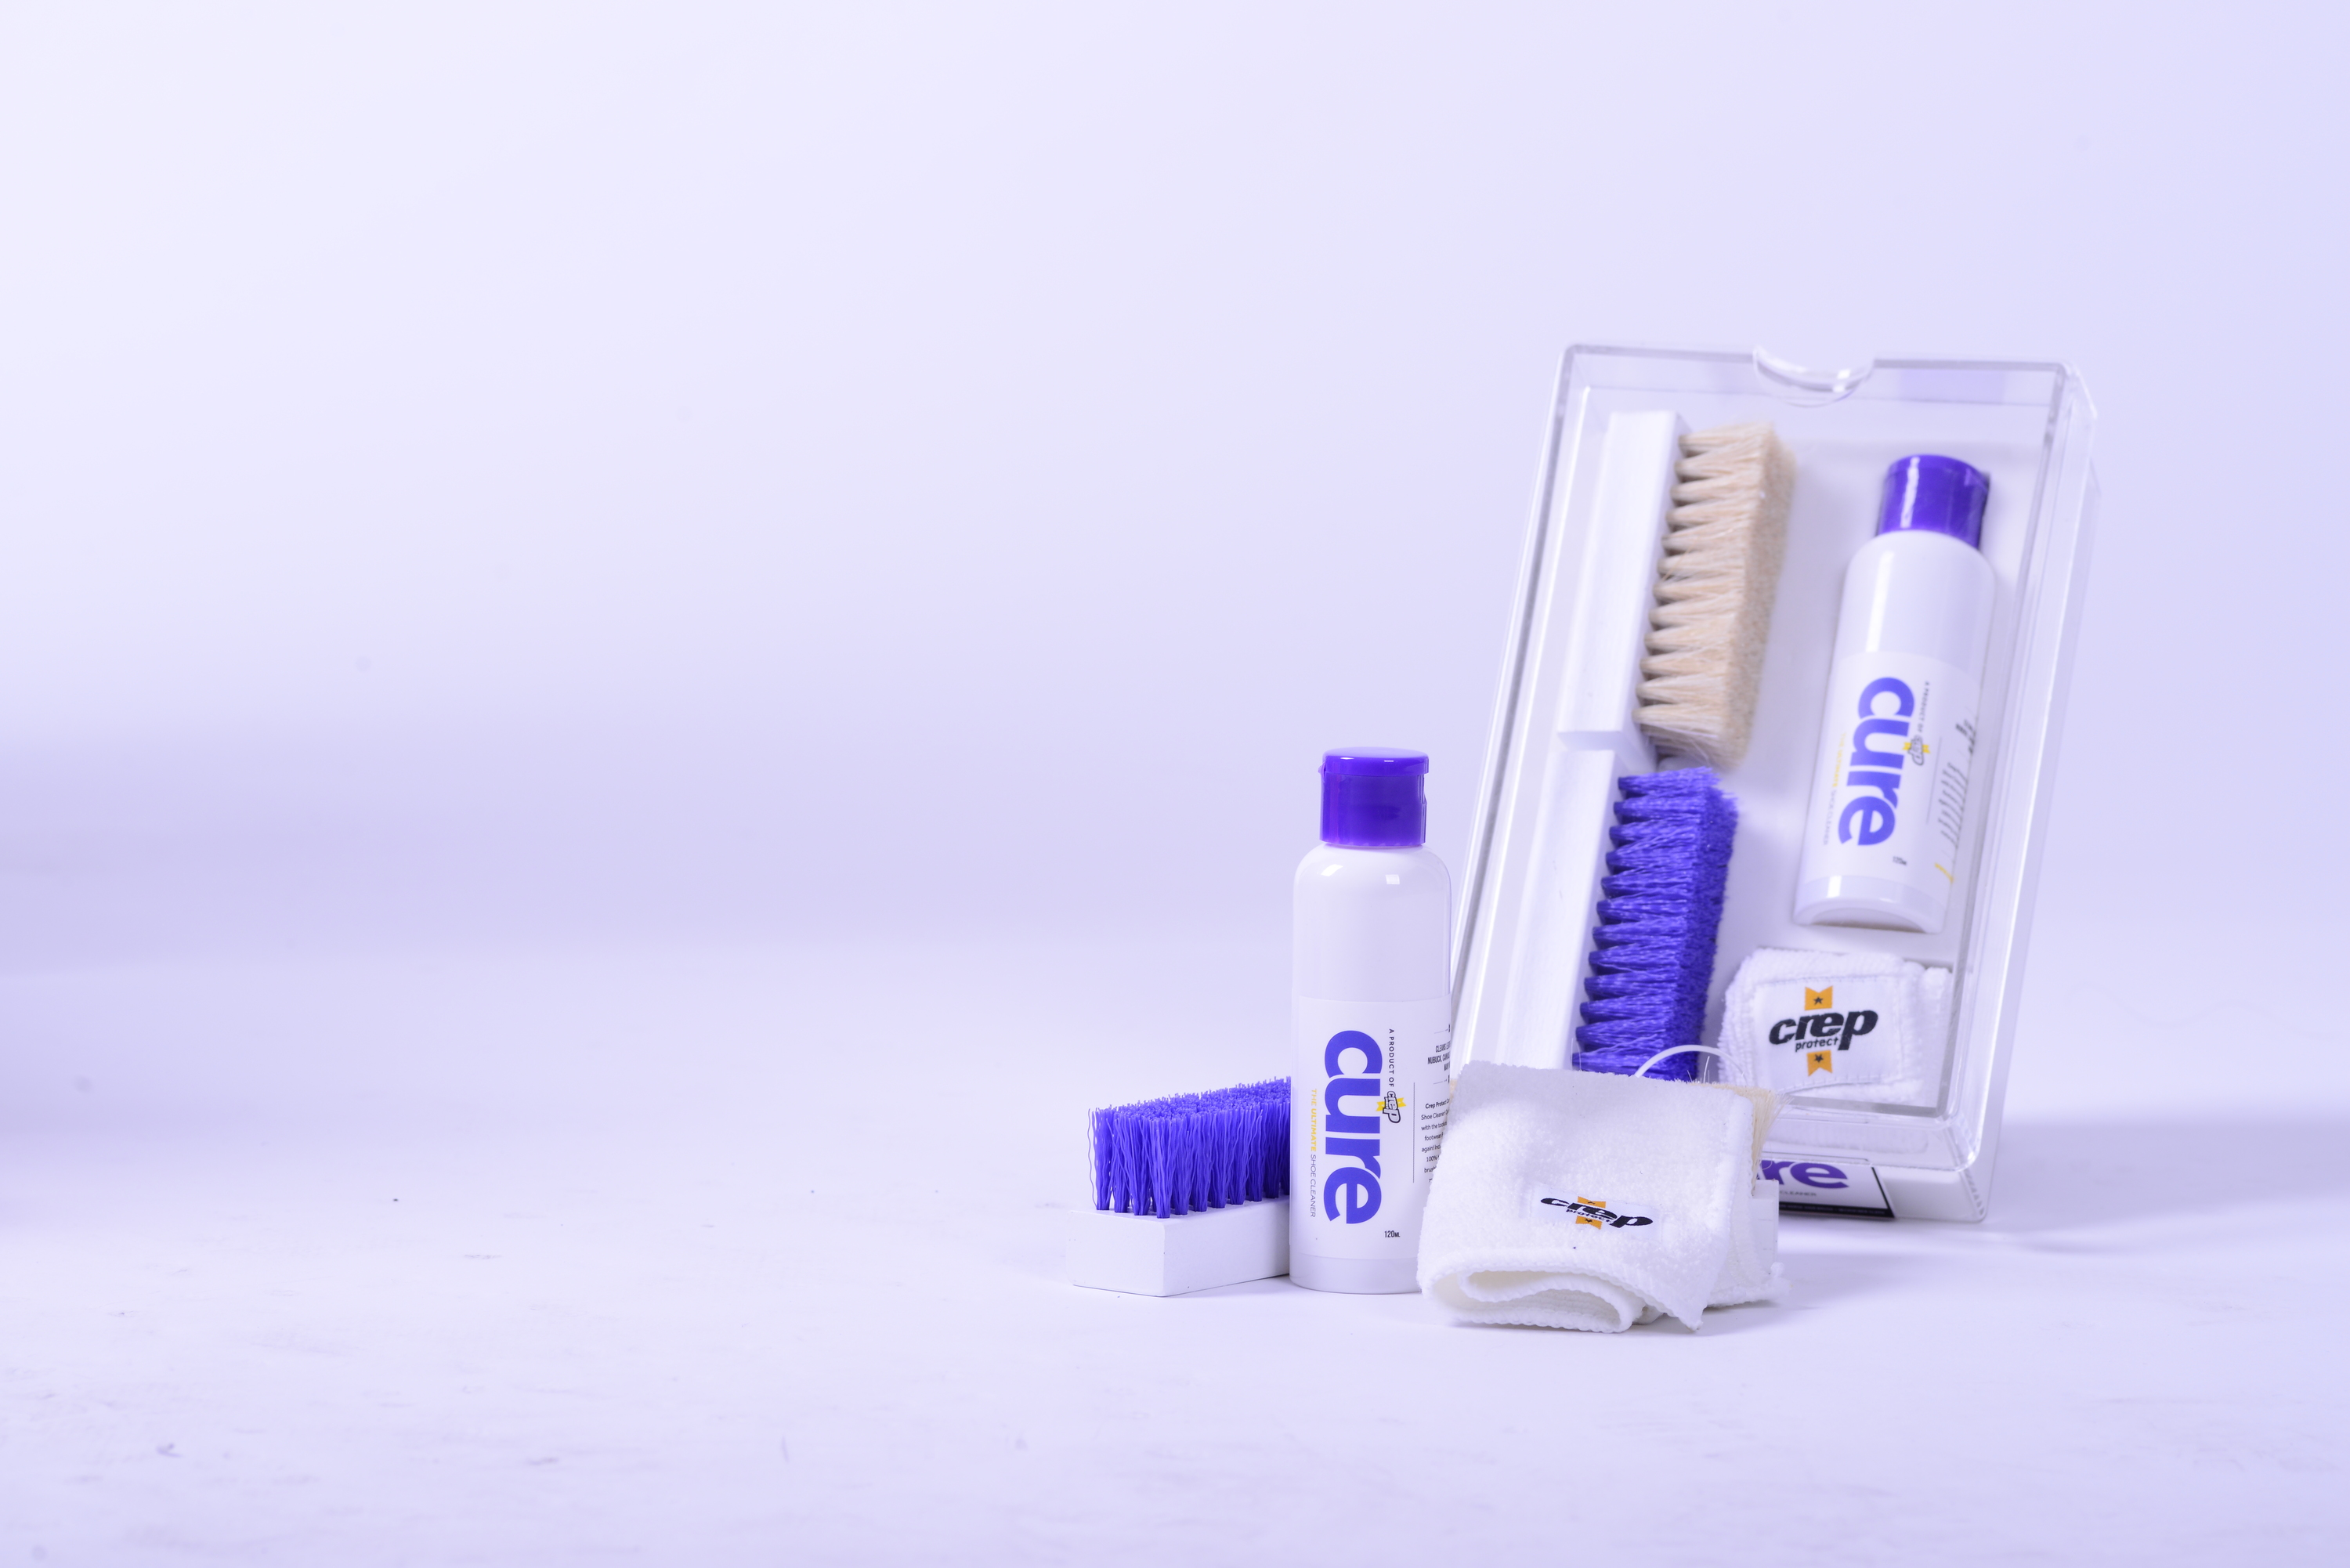 Crep Protect Cure Premium Sneaker Cleaning Kit